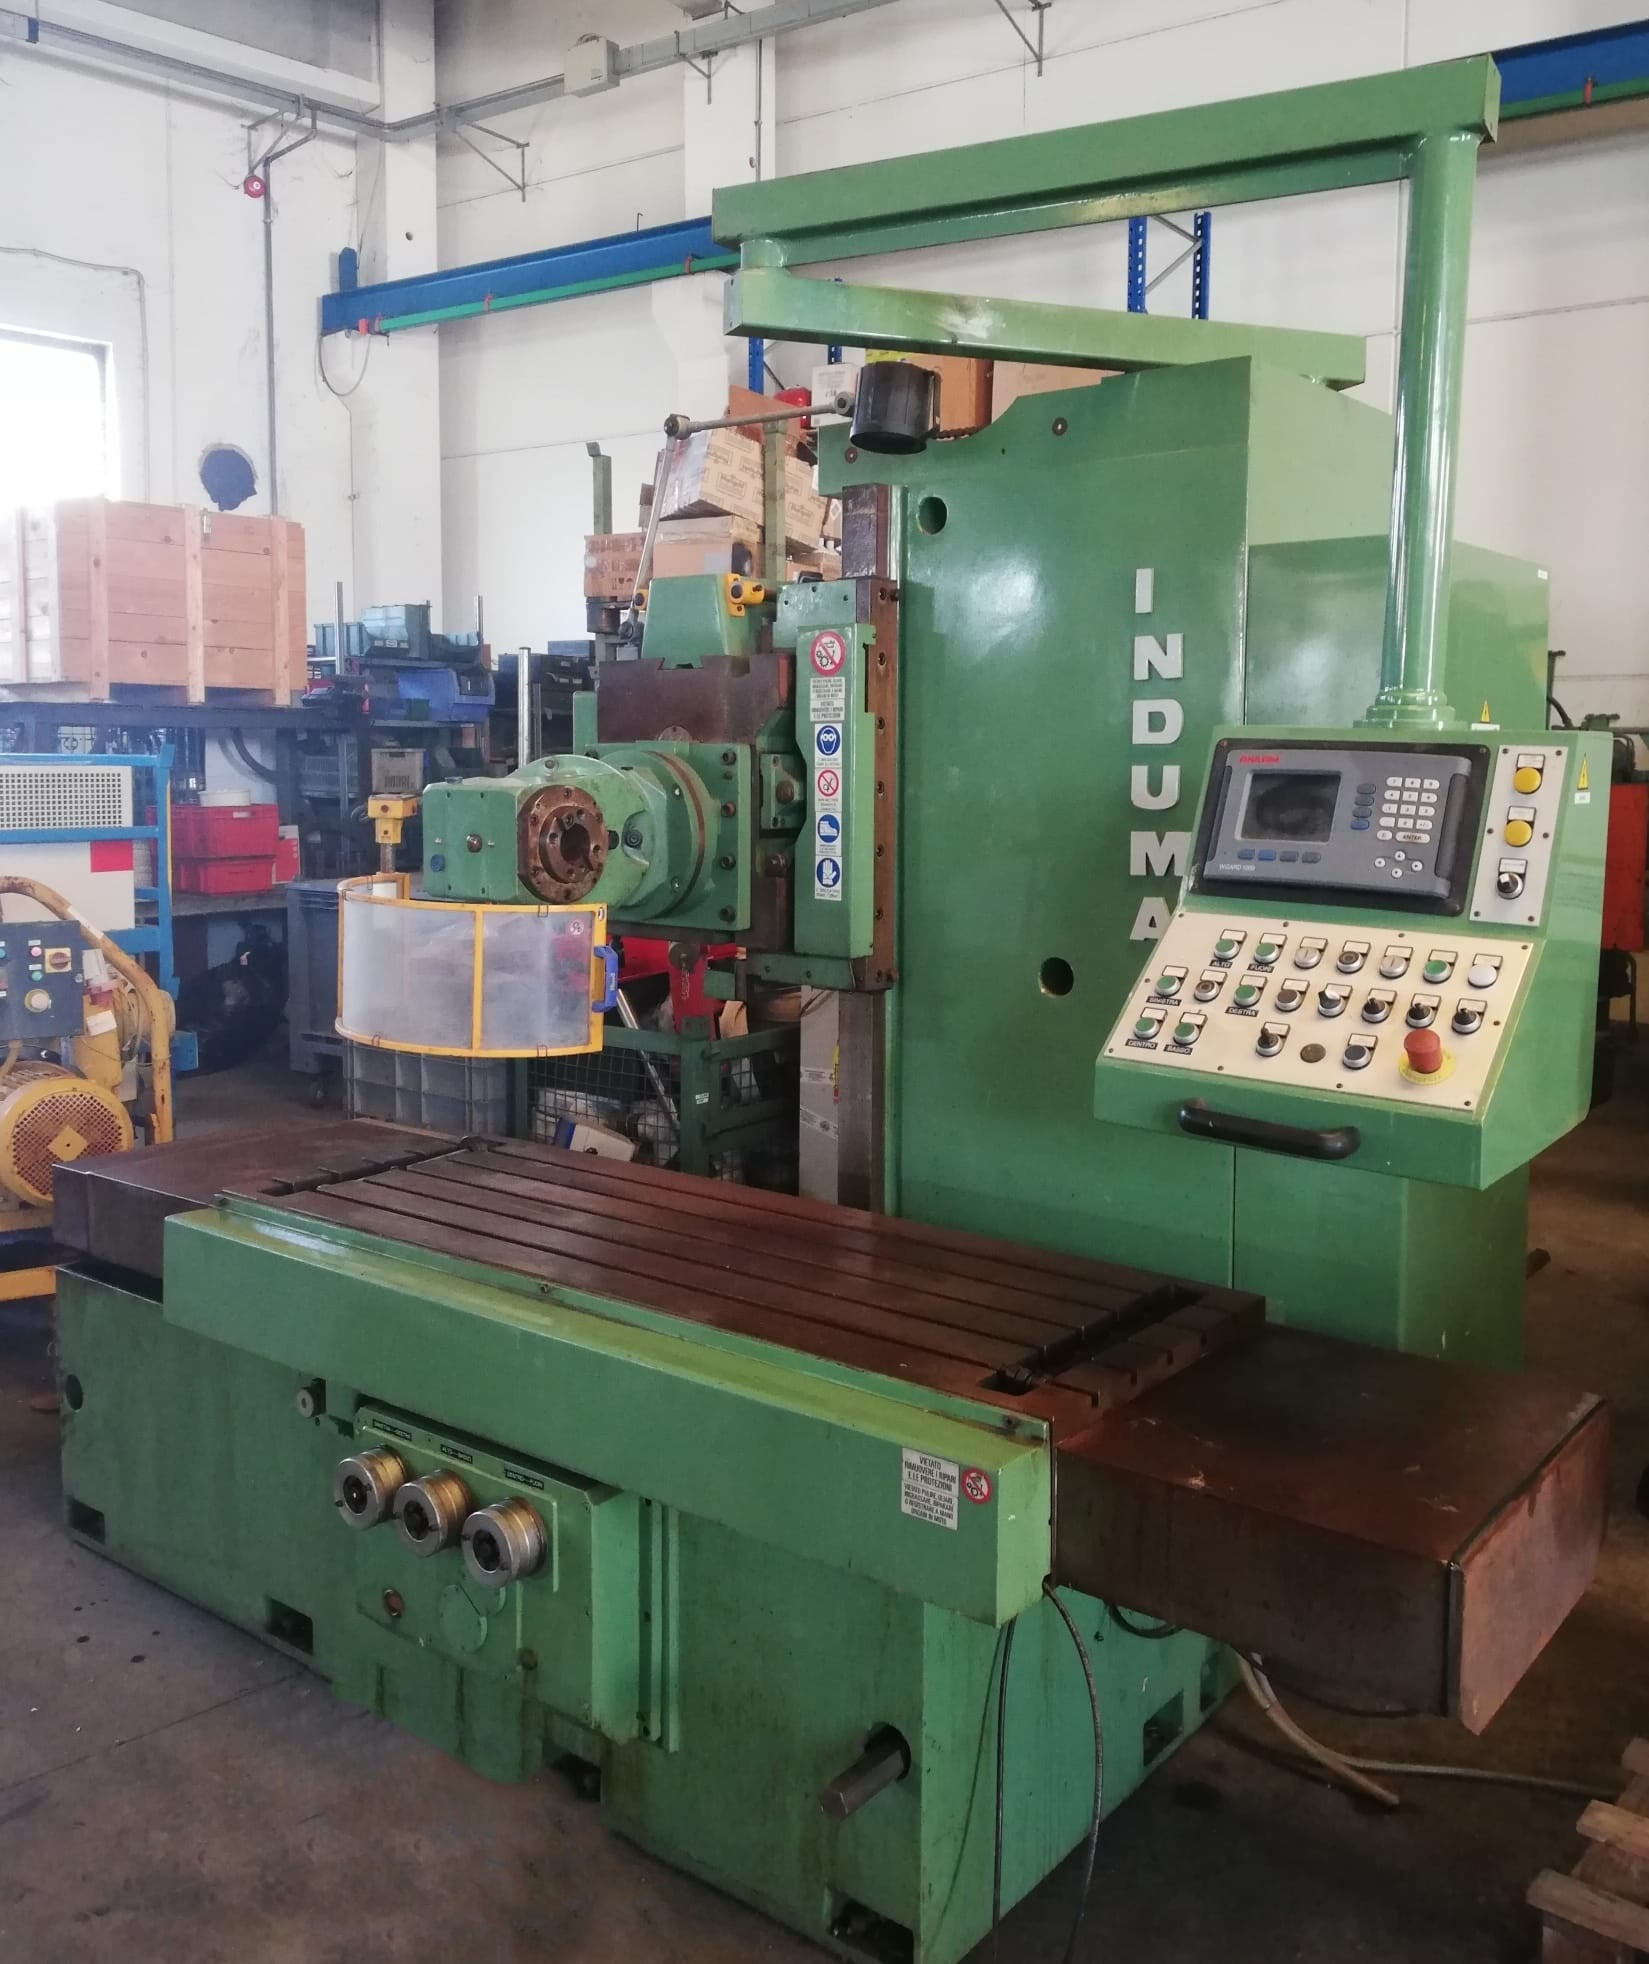 Milling machine INDUMA